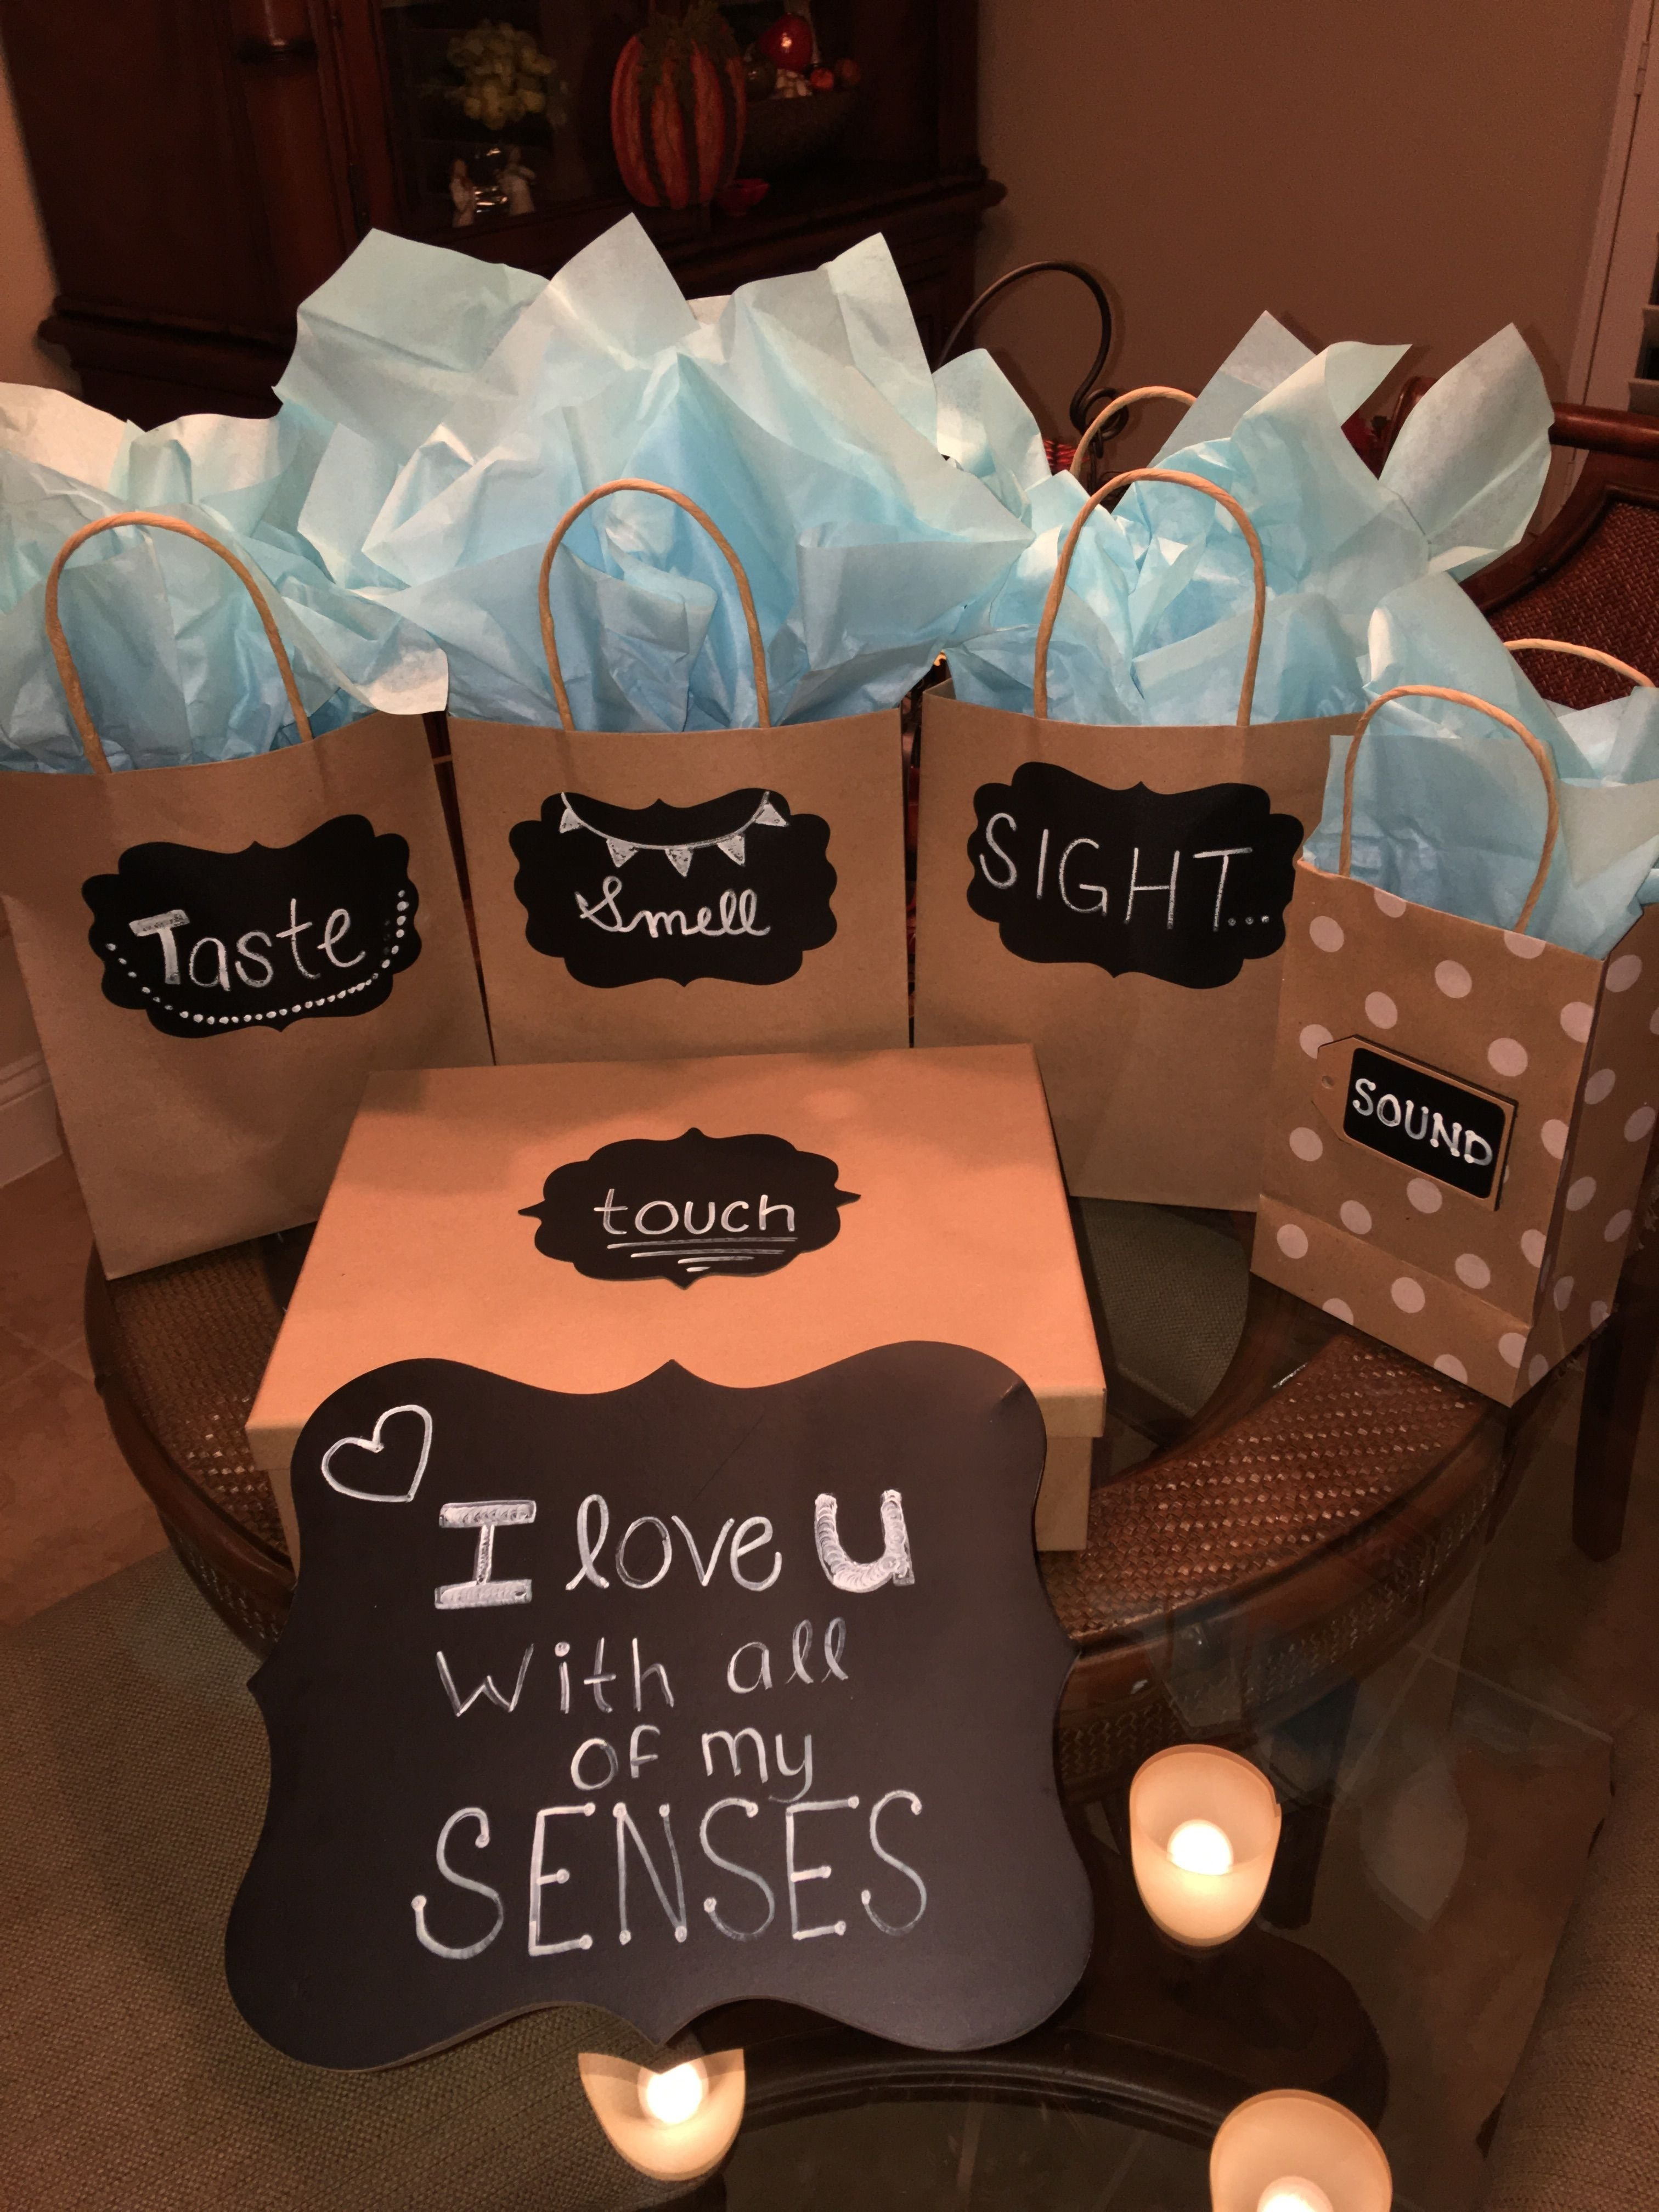 10 Lovable Romantic Birthday Gift Ideas Boyfriend I Love You With All Of My Senses